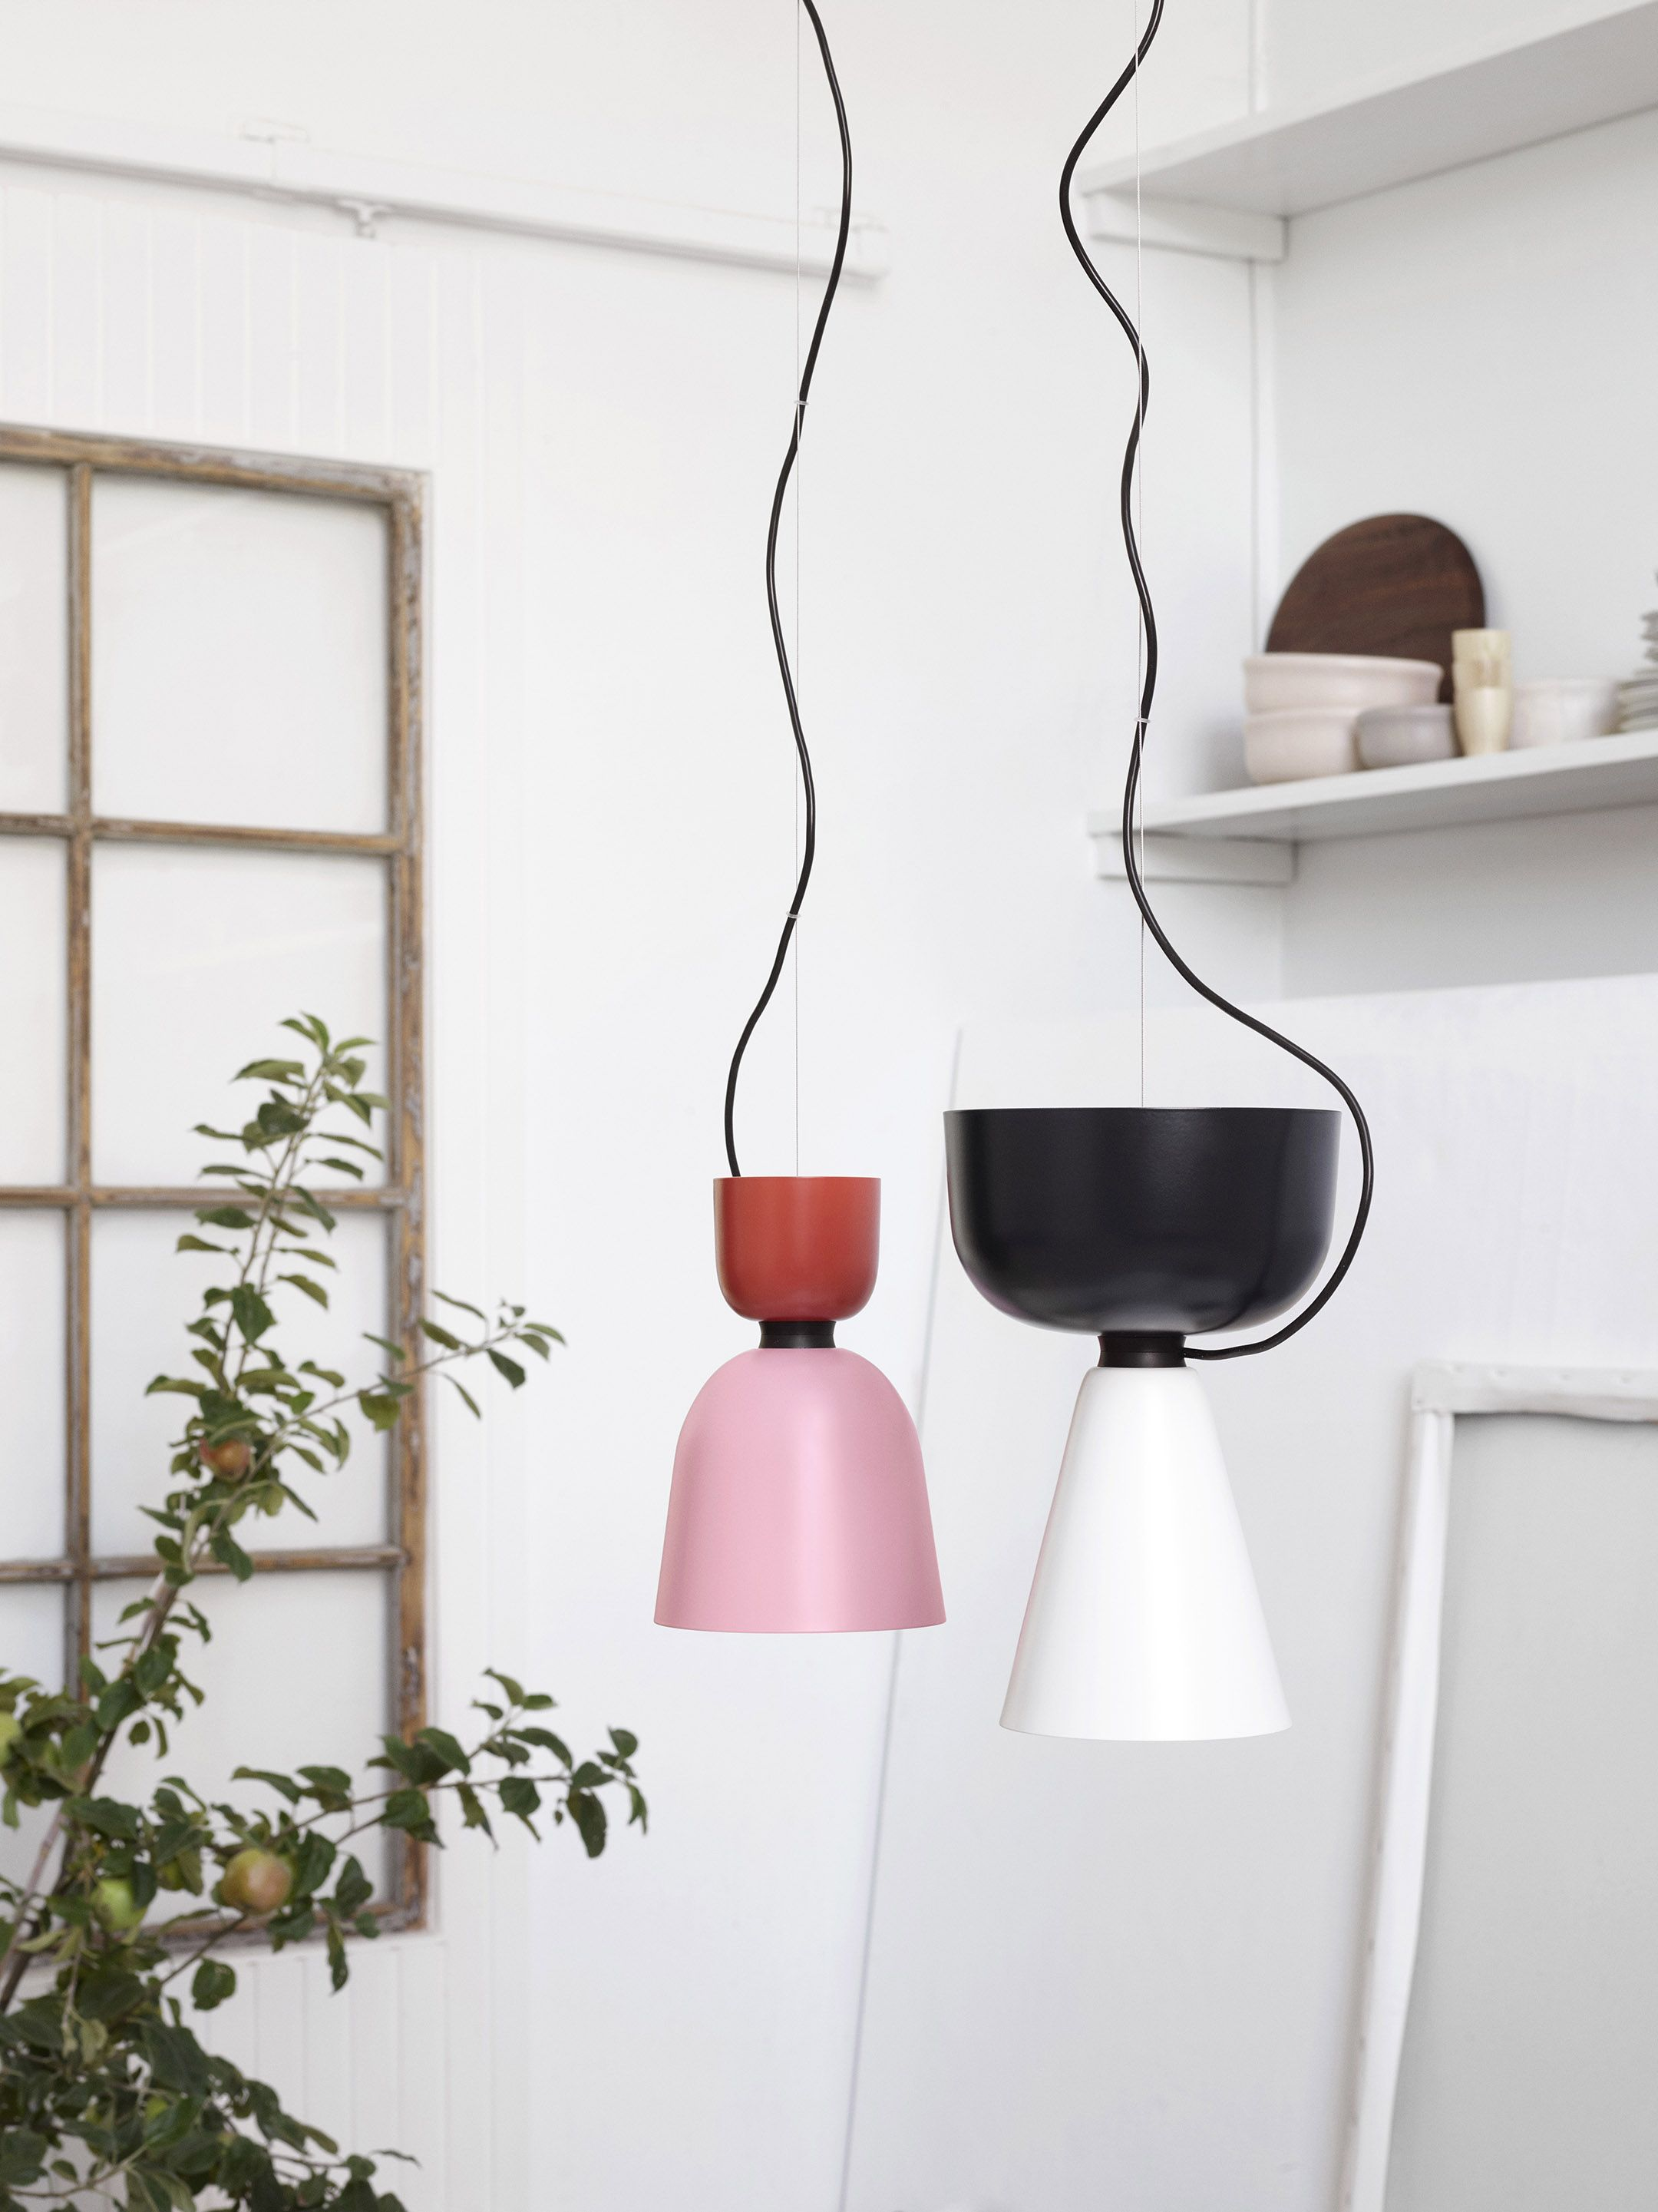 Beautiful Scandinavian Furniture Lighting And Home Accessories From Hem.  Image Features The Alphabeta Pendant Light